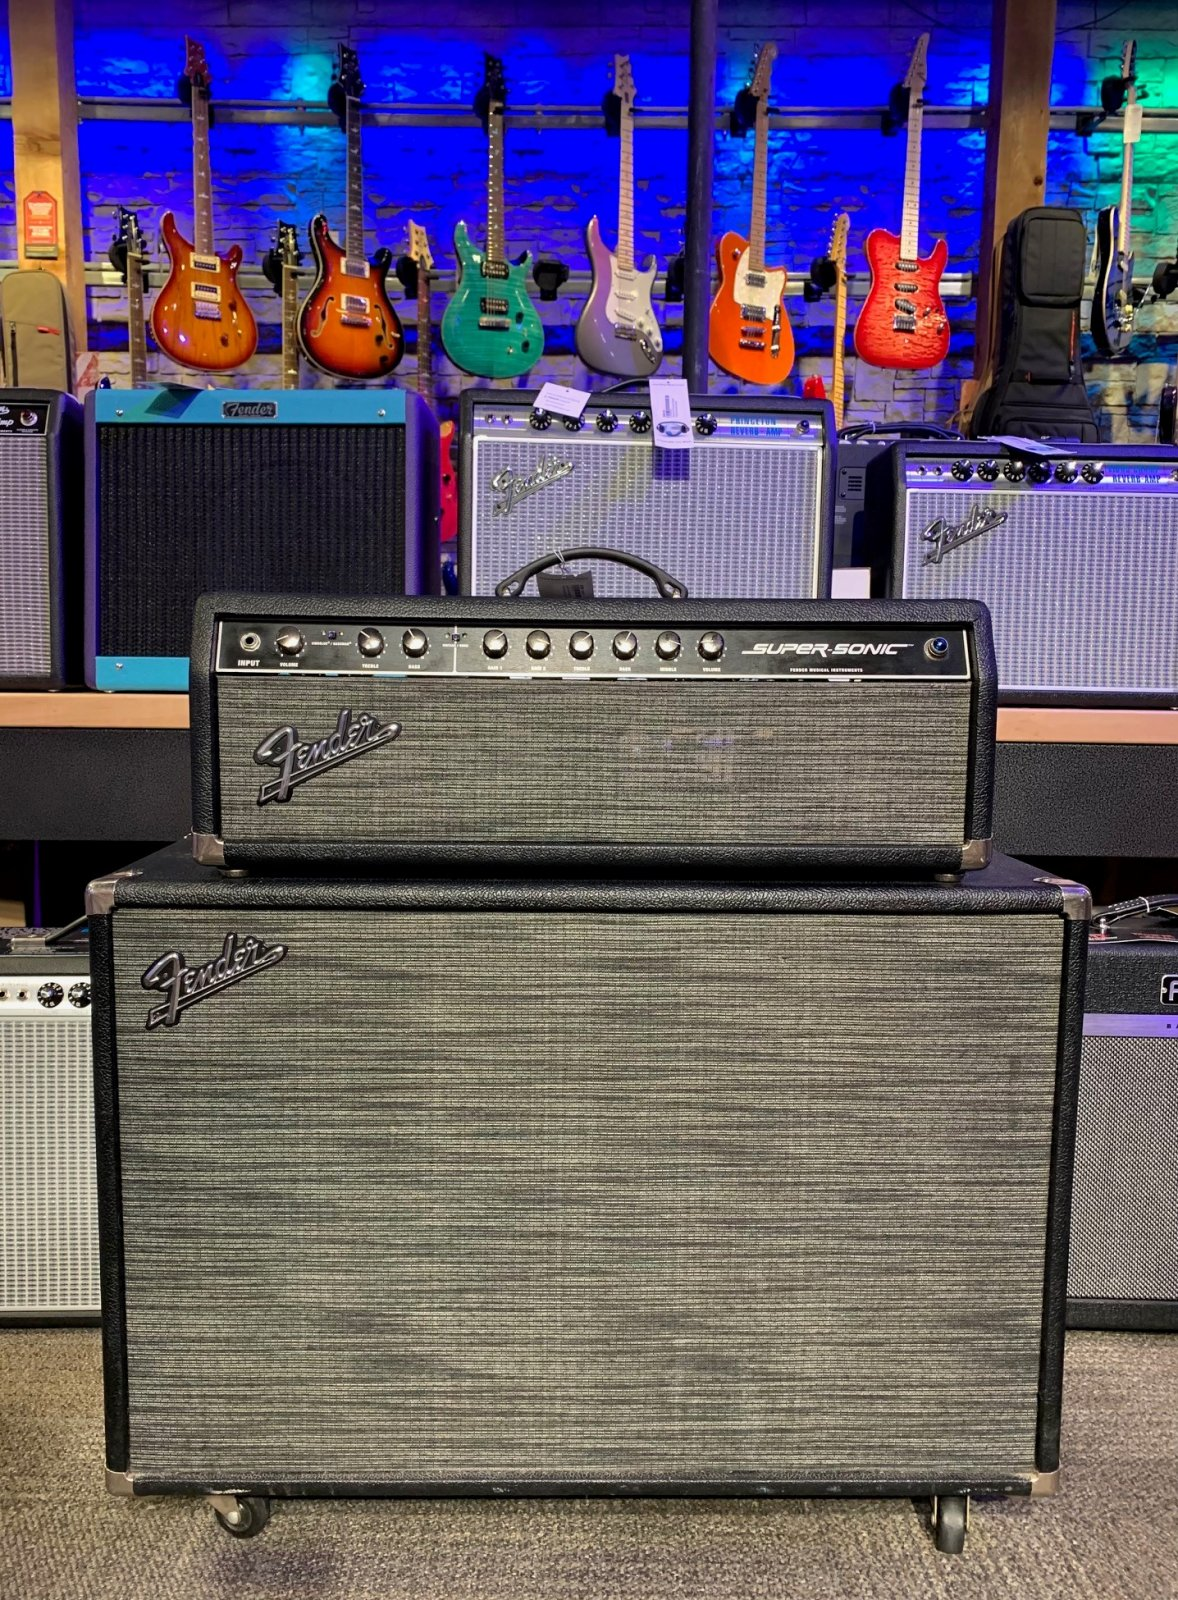 Used Fender Supersonic 60 Head with 212 Cabinet in Black Pepper